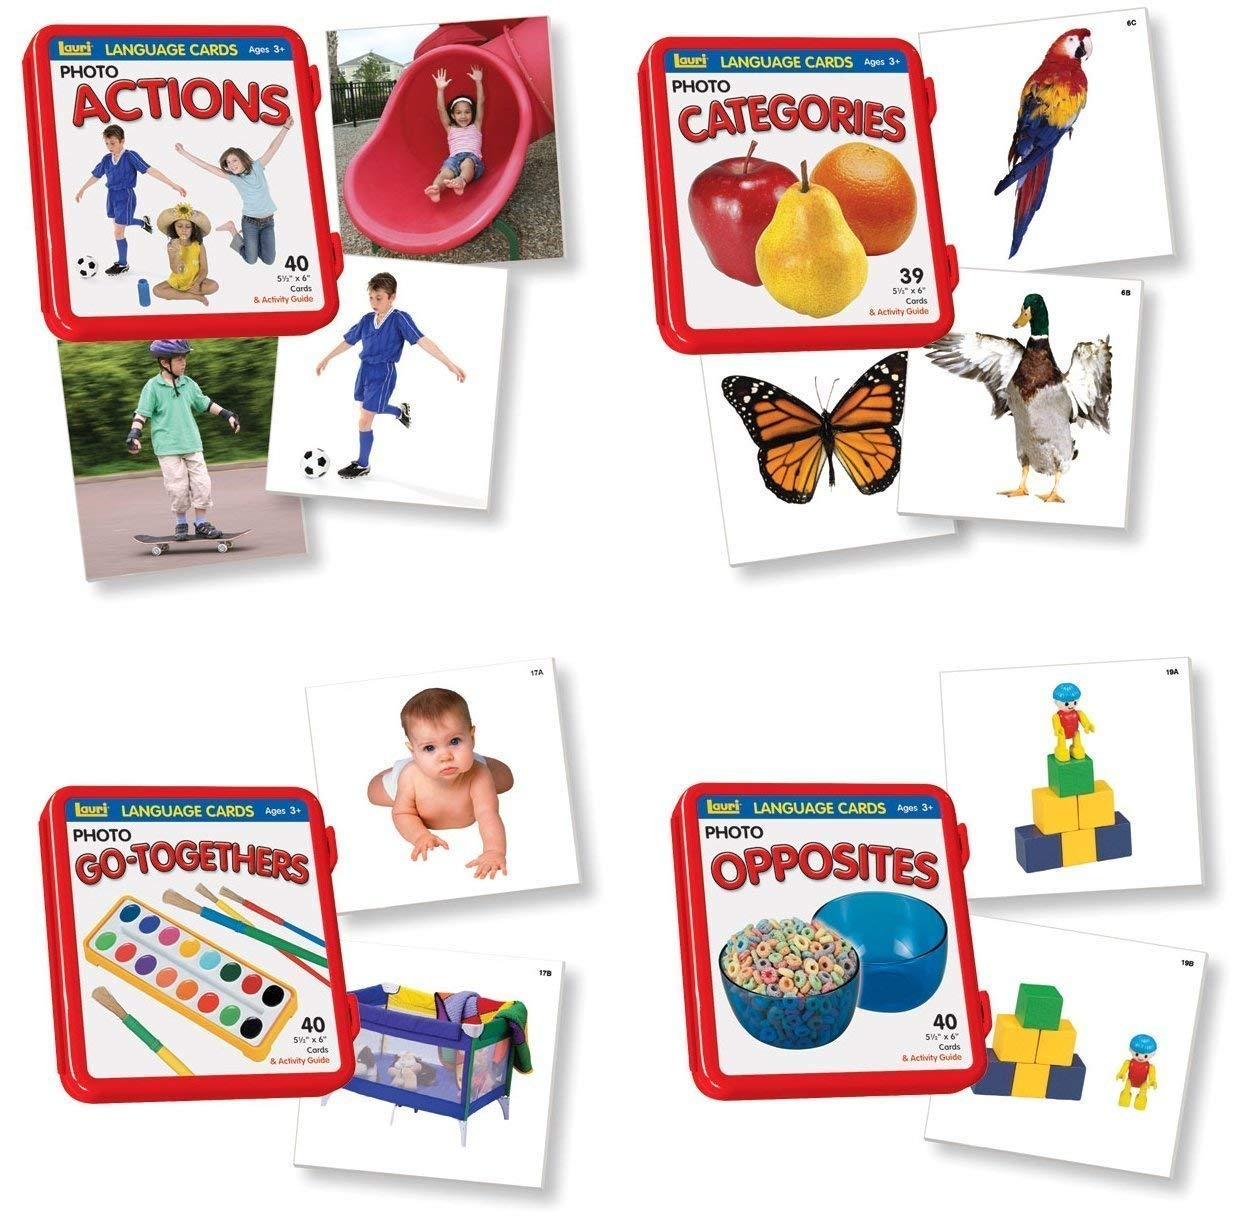 Lauri Language Cards Bundle - Actions, Categories, Go-Togethers, Opposites (Set of 4) by Lauri